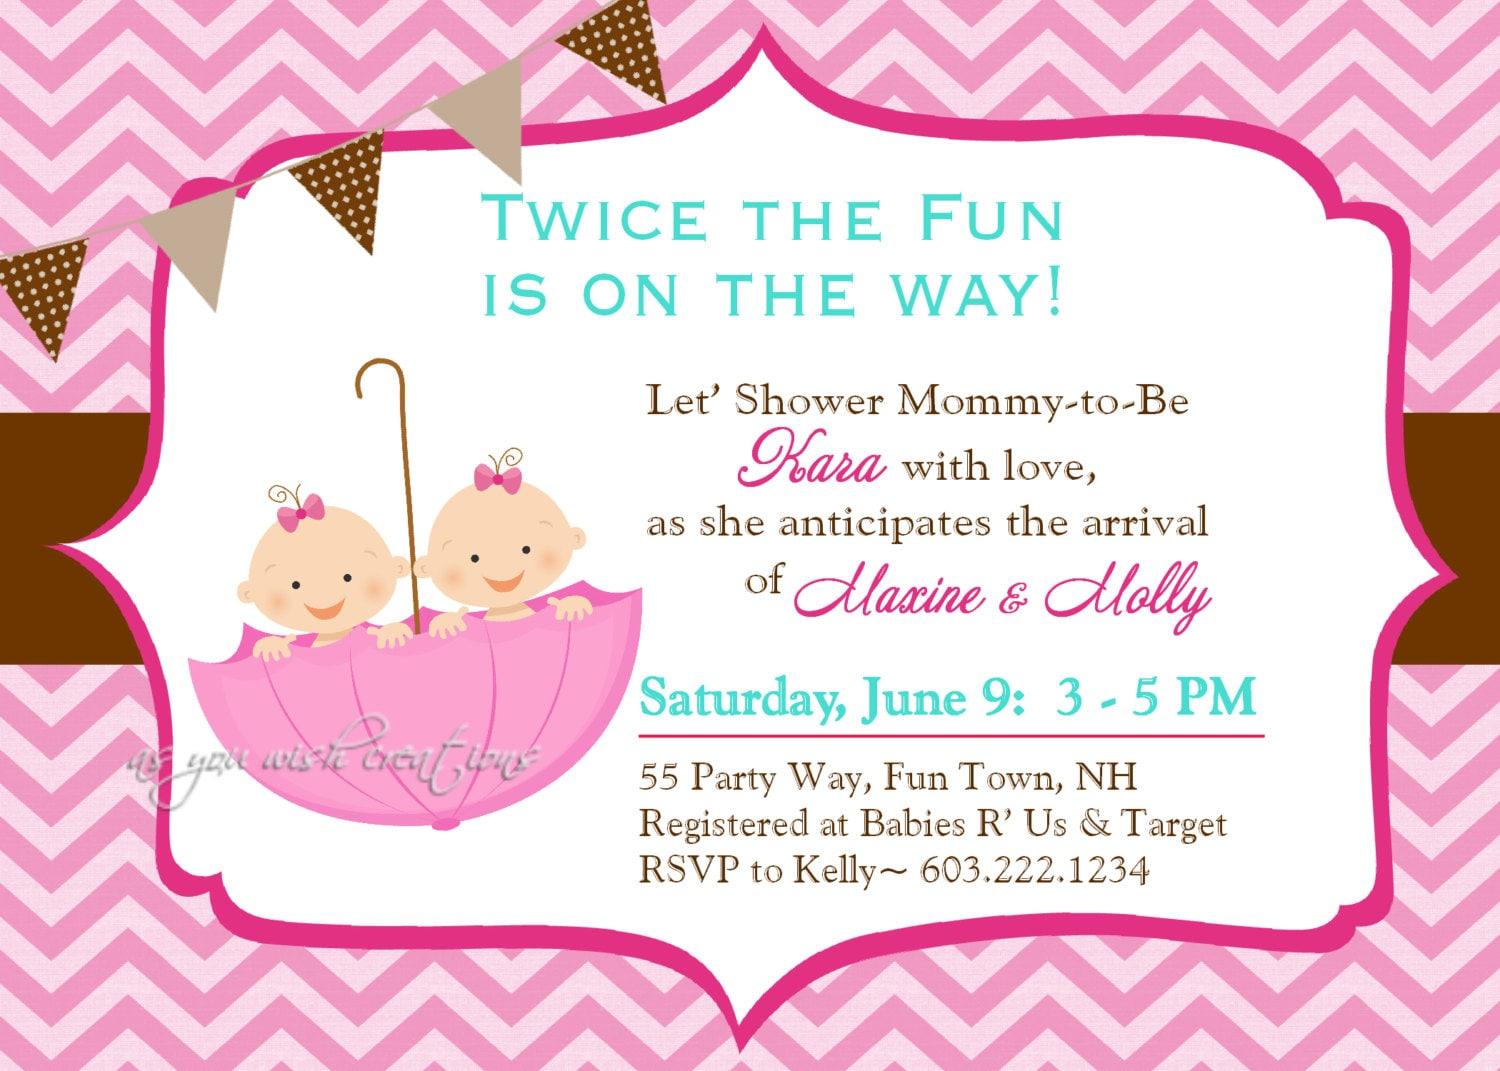 umbrella twins baby shower invitation chevron twins shower, Baby shower invitations